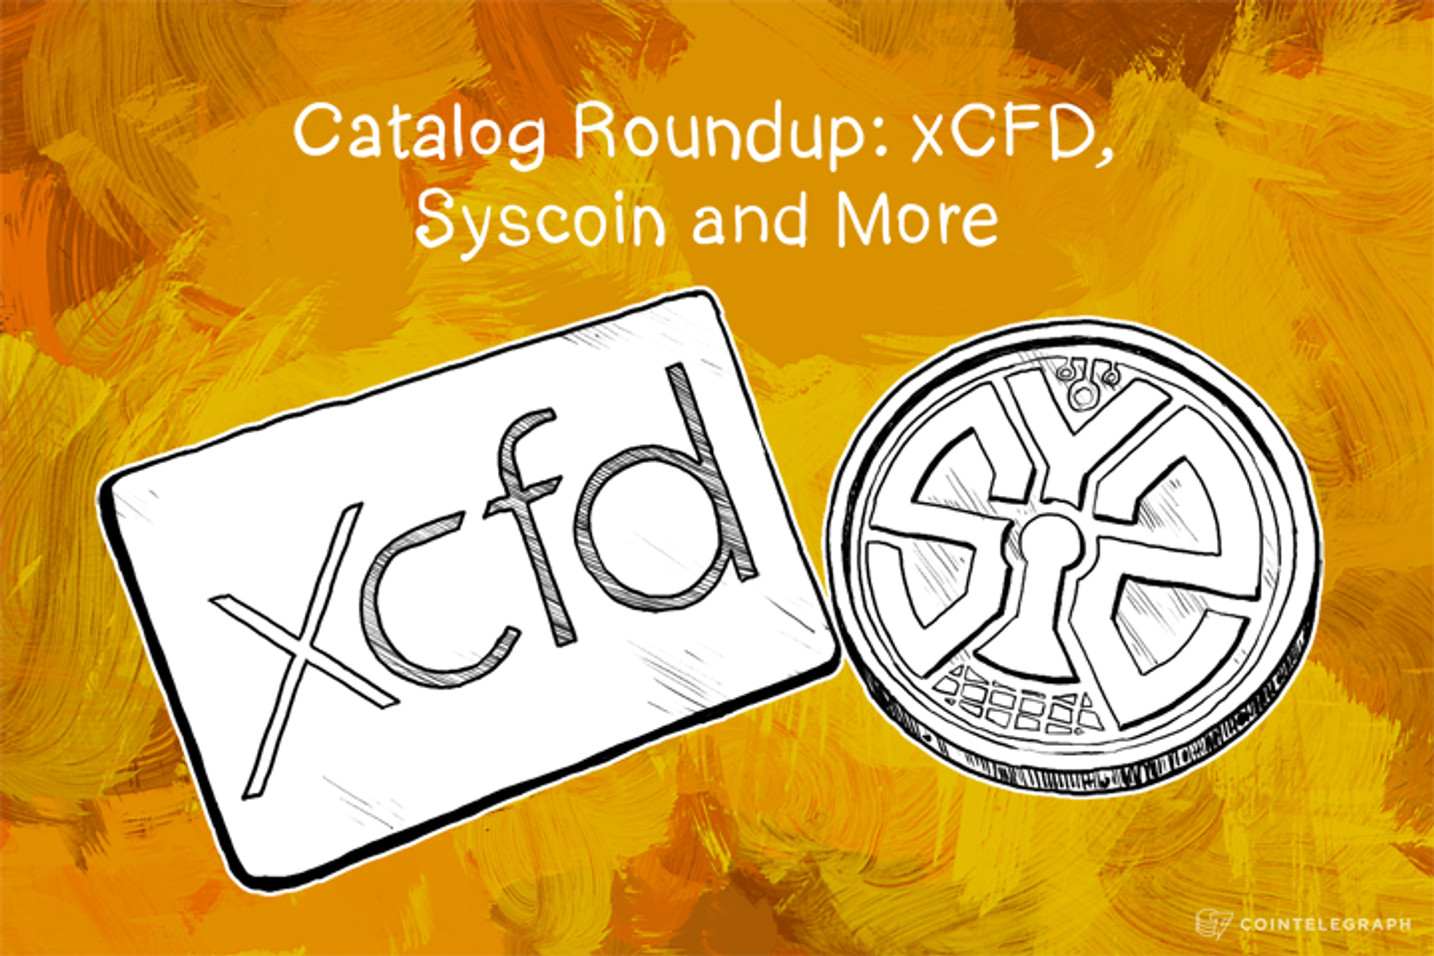 Catalog Roundup: xCFD, Syscoin and More